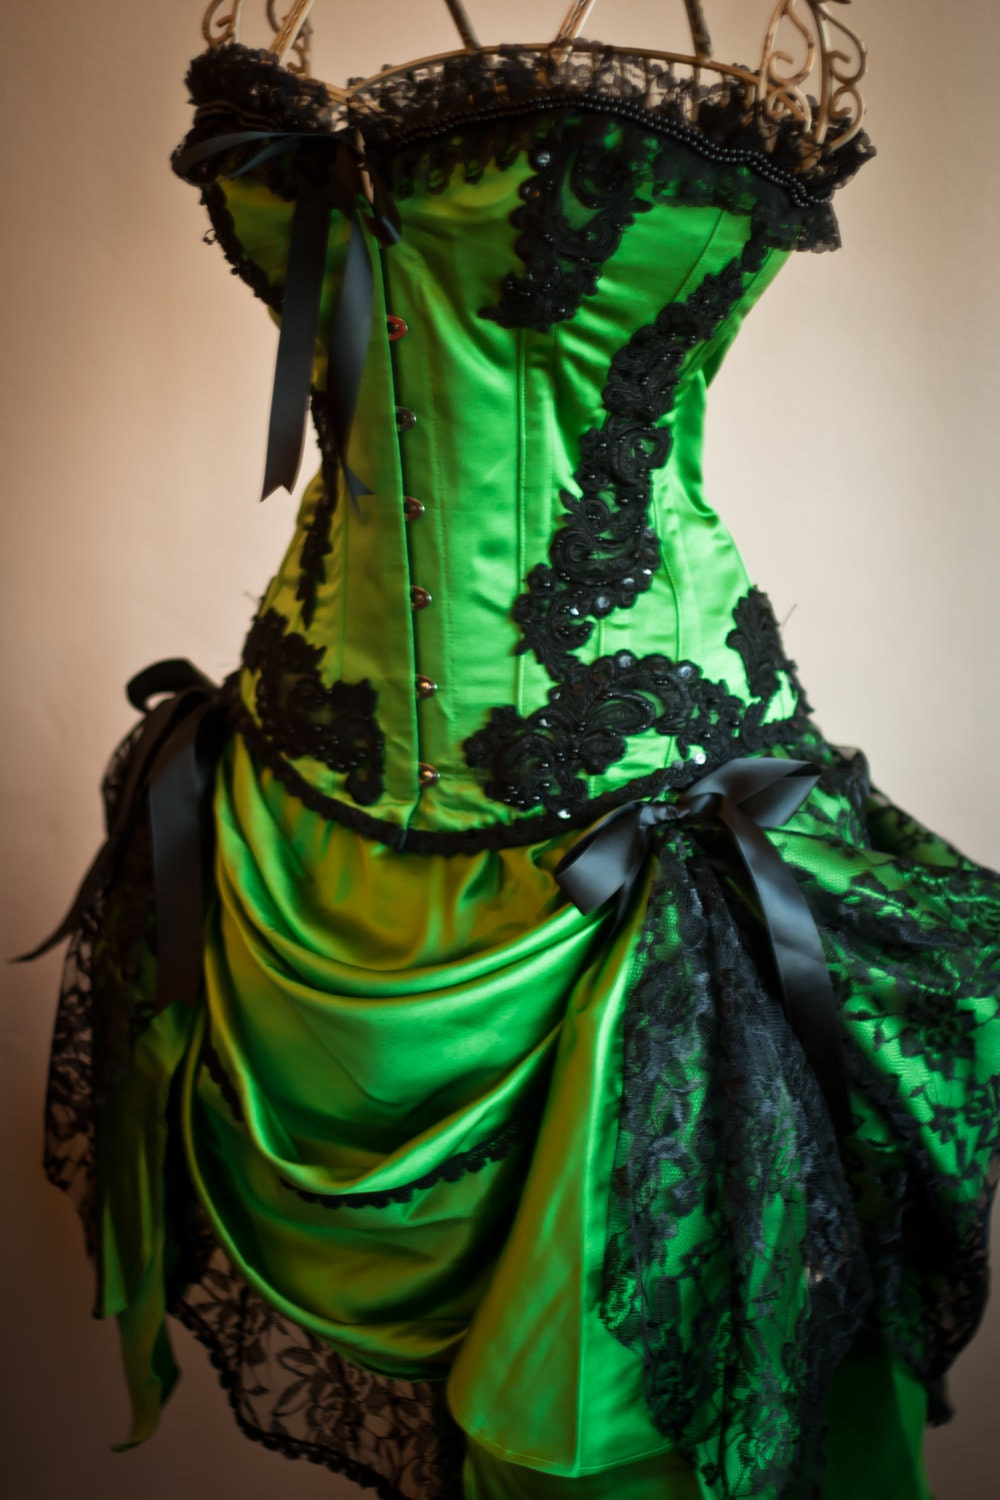 GREEN GYPSY - Steampunk Green Black Burlesque Corset Costume Halloween Prom Party Dress - olgaitaly